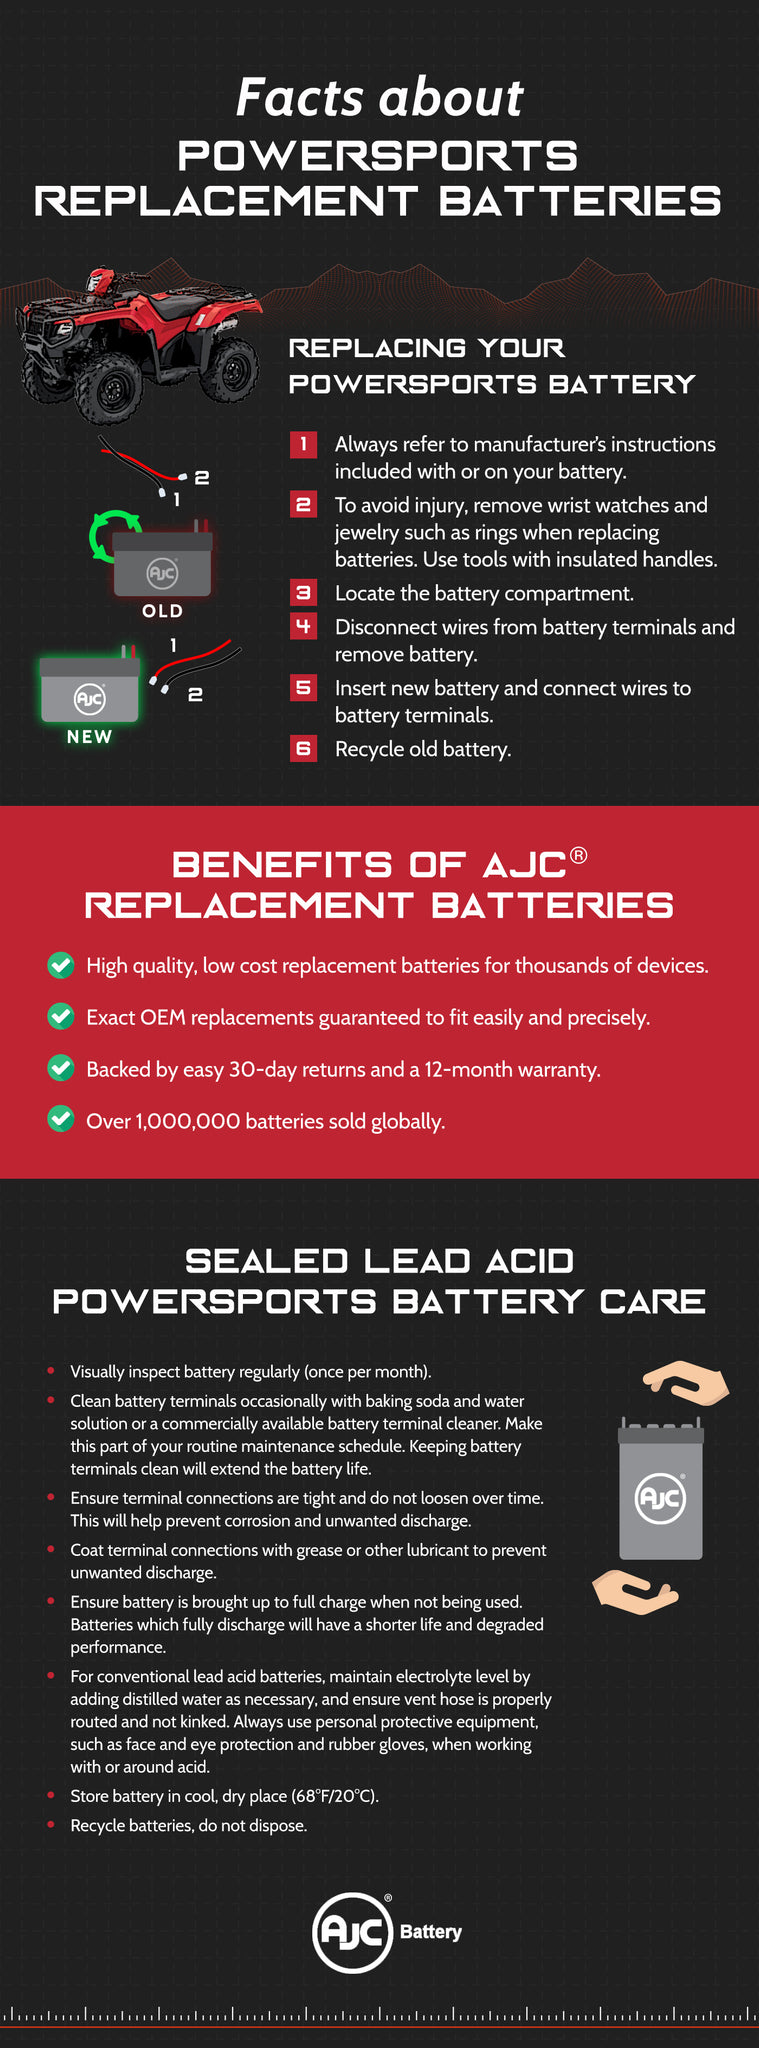 Powersports-infographic